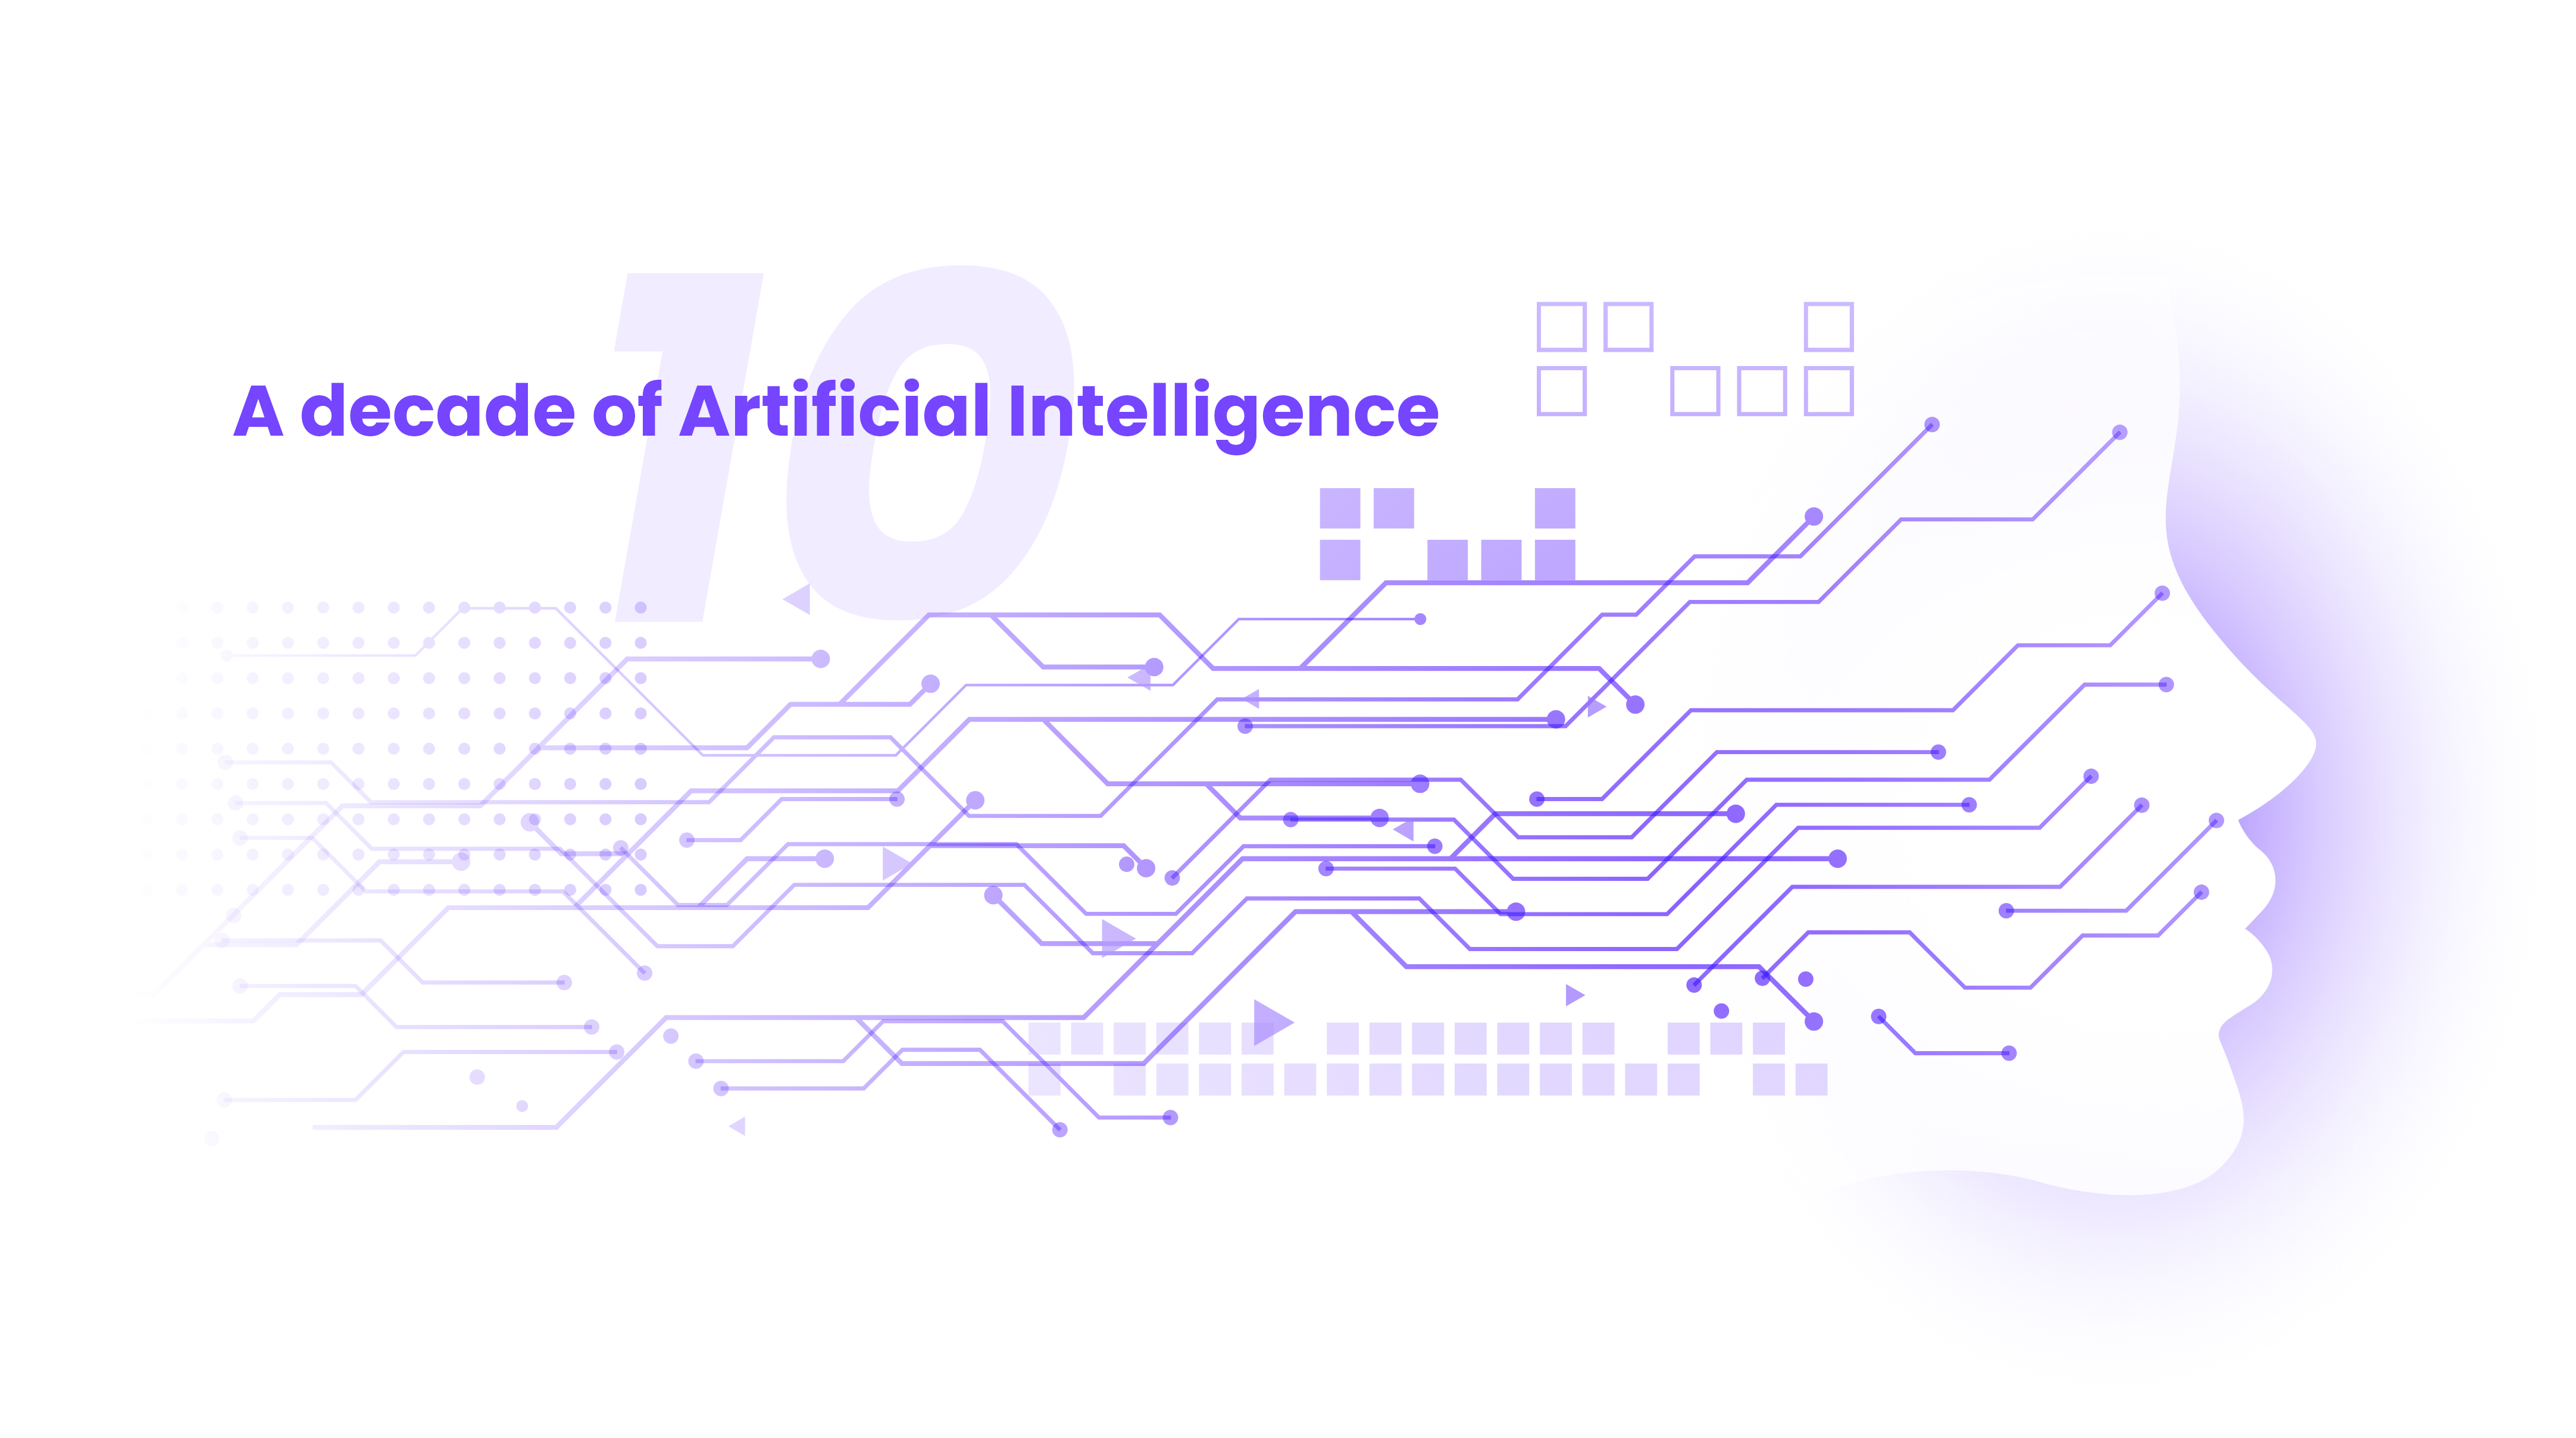 Decade of Artificial Intelligence: A Summary